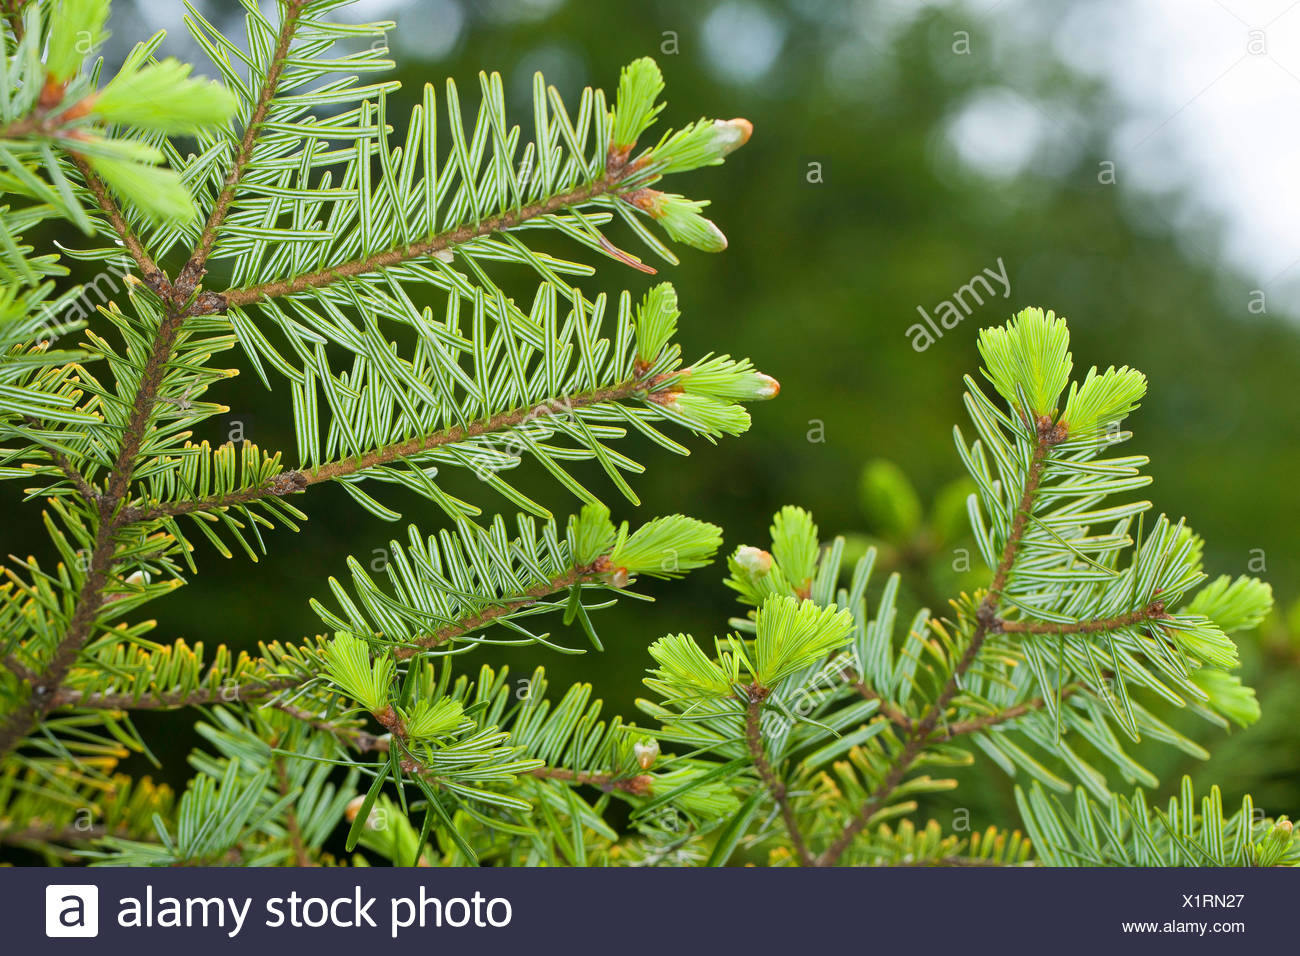 European silver fir (Abies alba), branch from below with young shoots, Germany - Stock Image